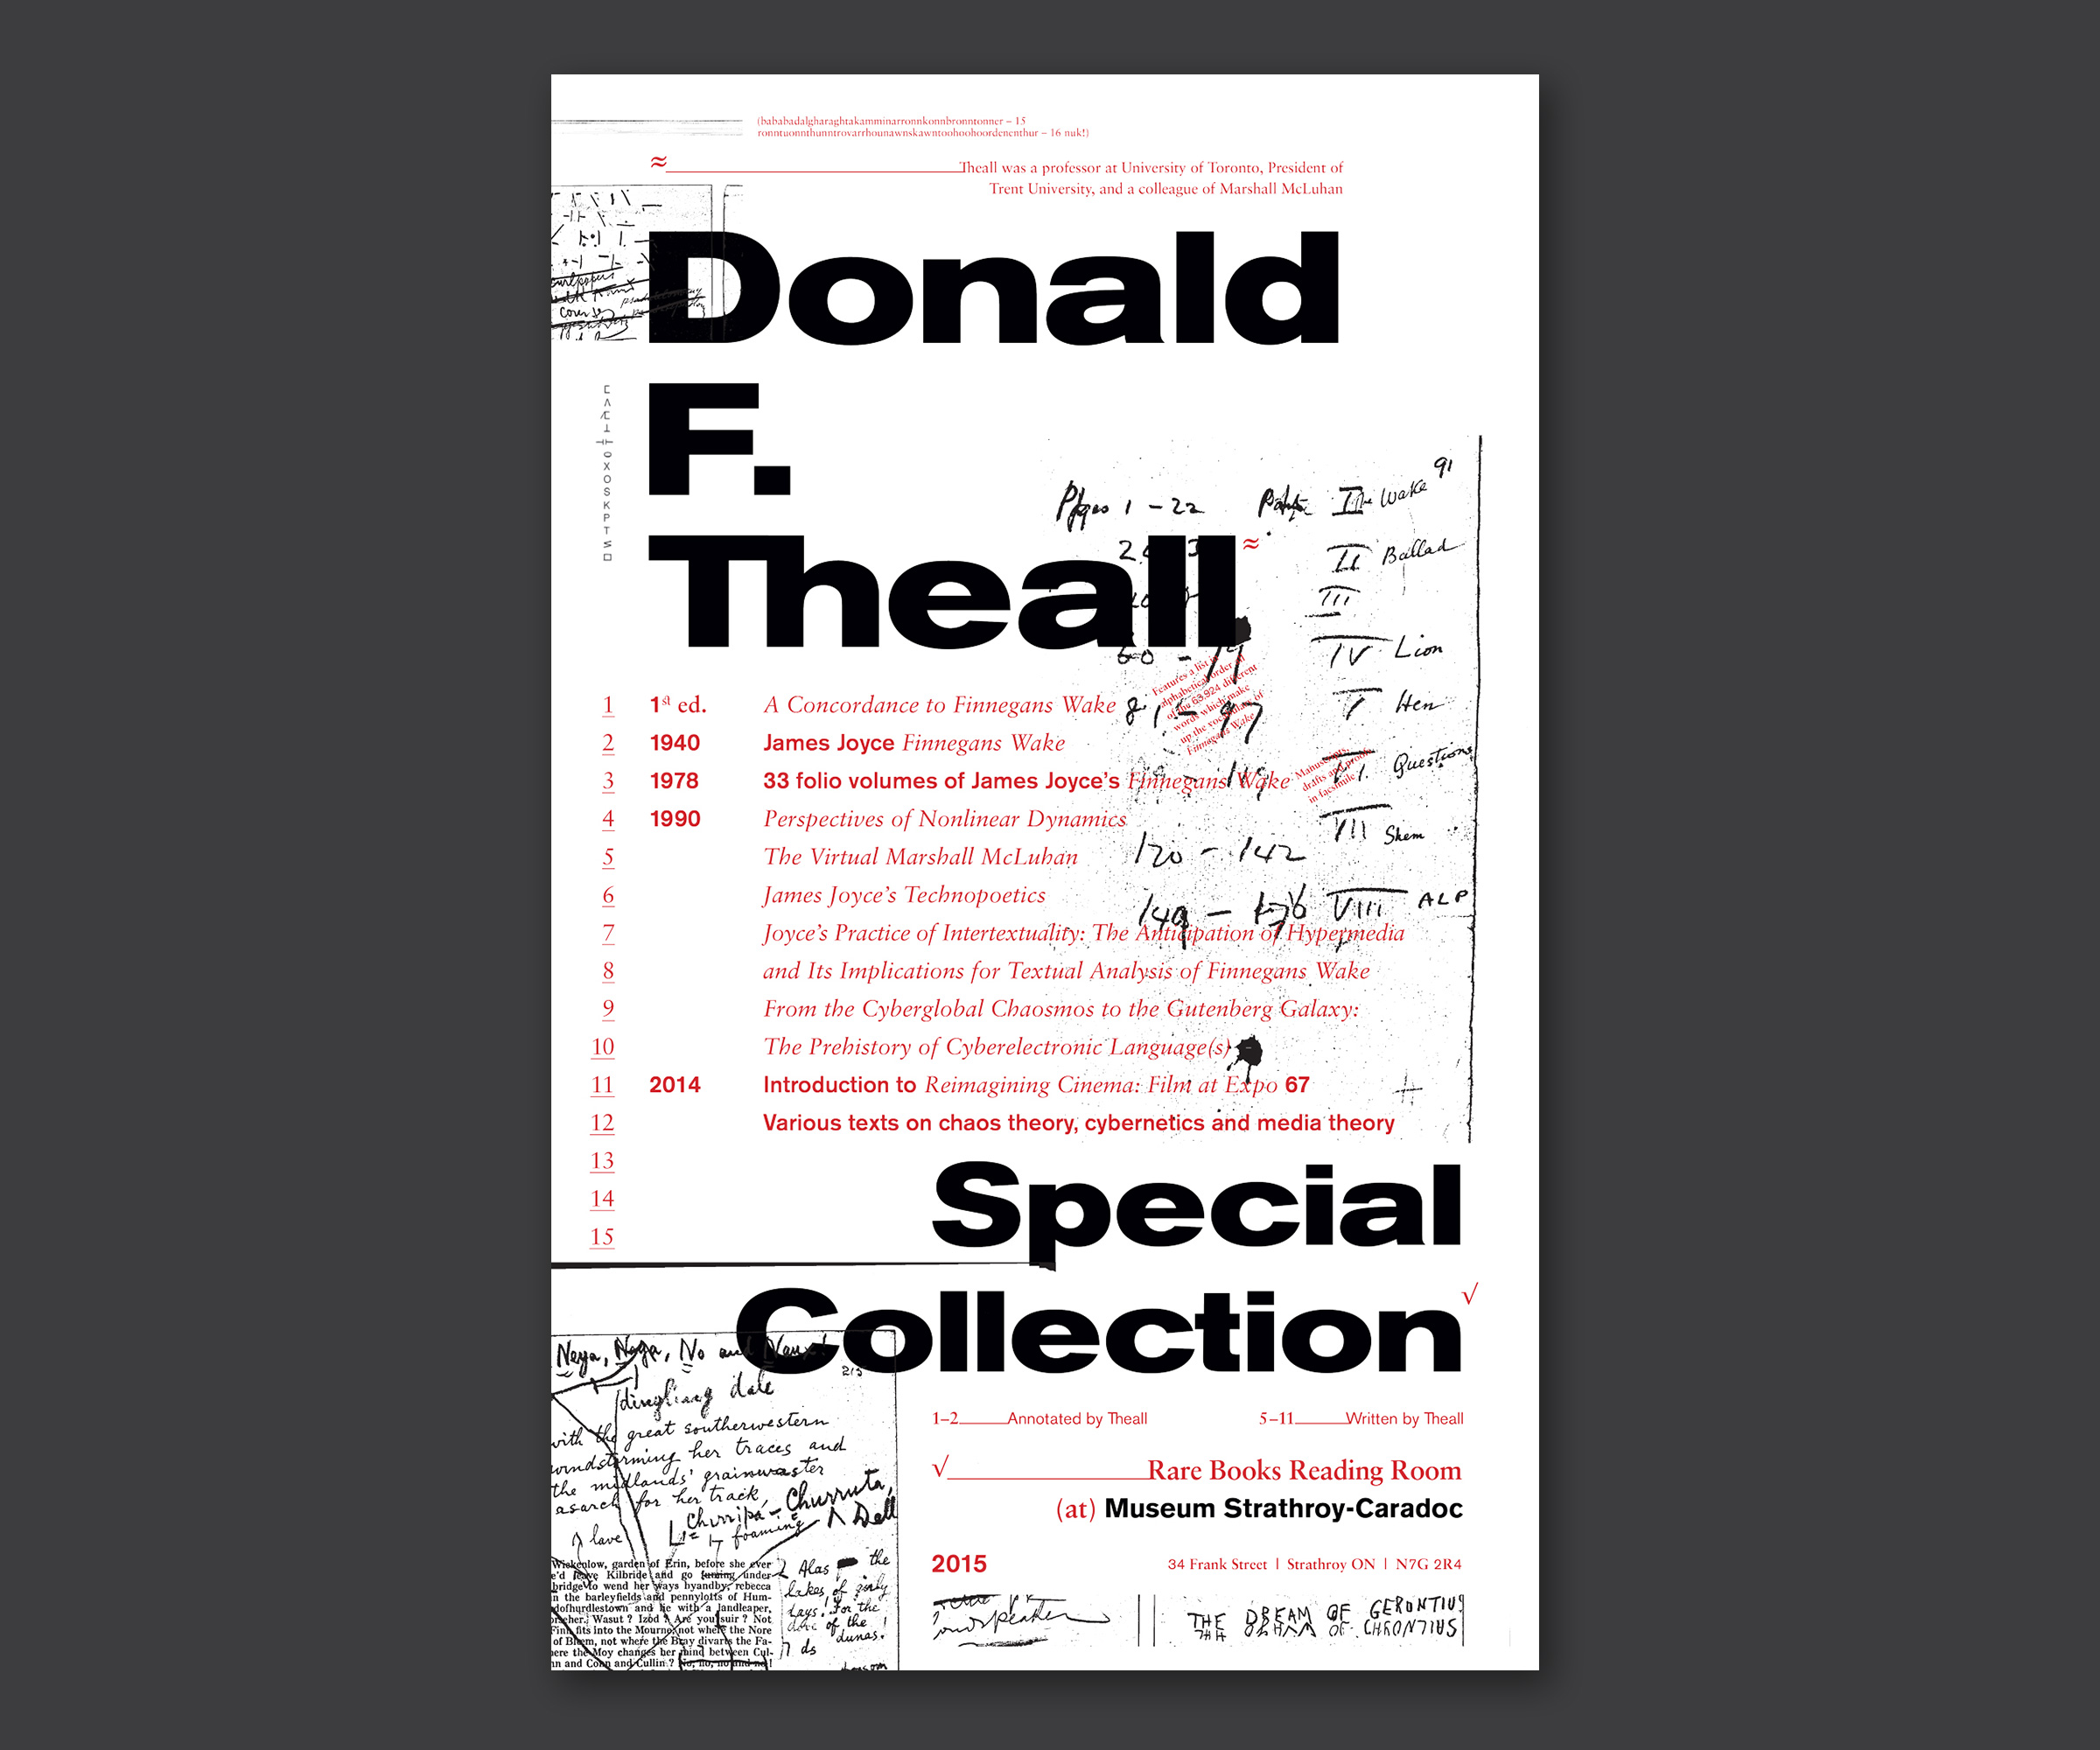 Strathroy Museum, Poster Series, Donald F. Theall Collection, 2014